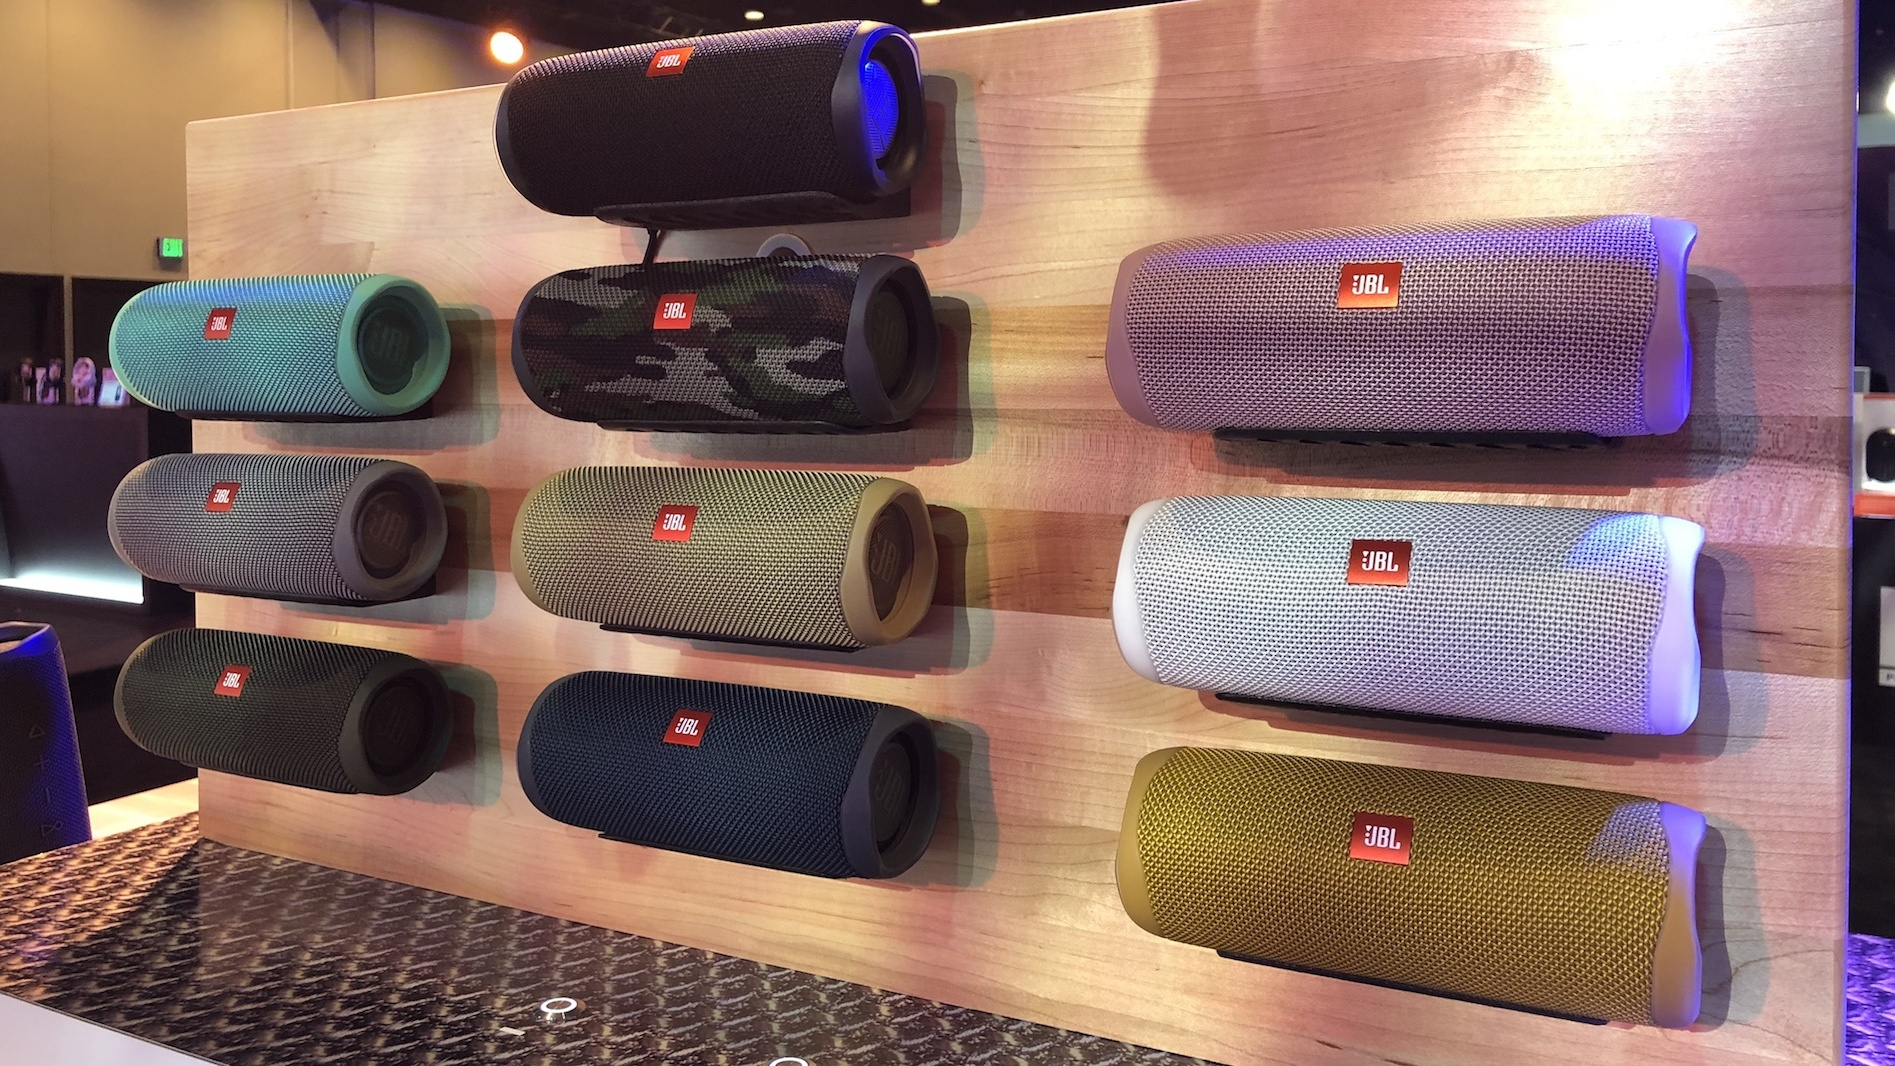 JBL launches Flip 5 Bluetooth speaker with USB-C charging at CES